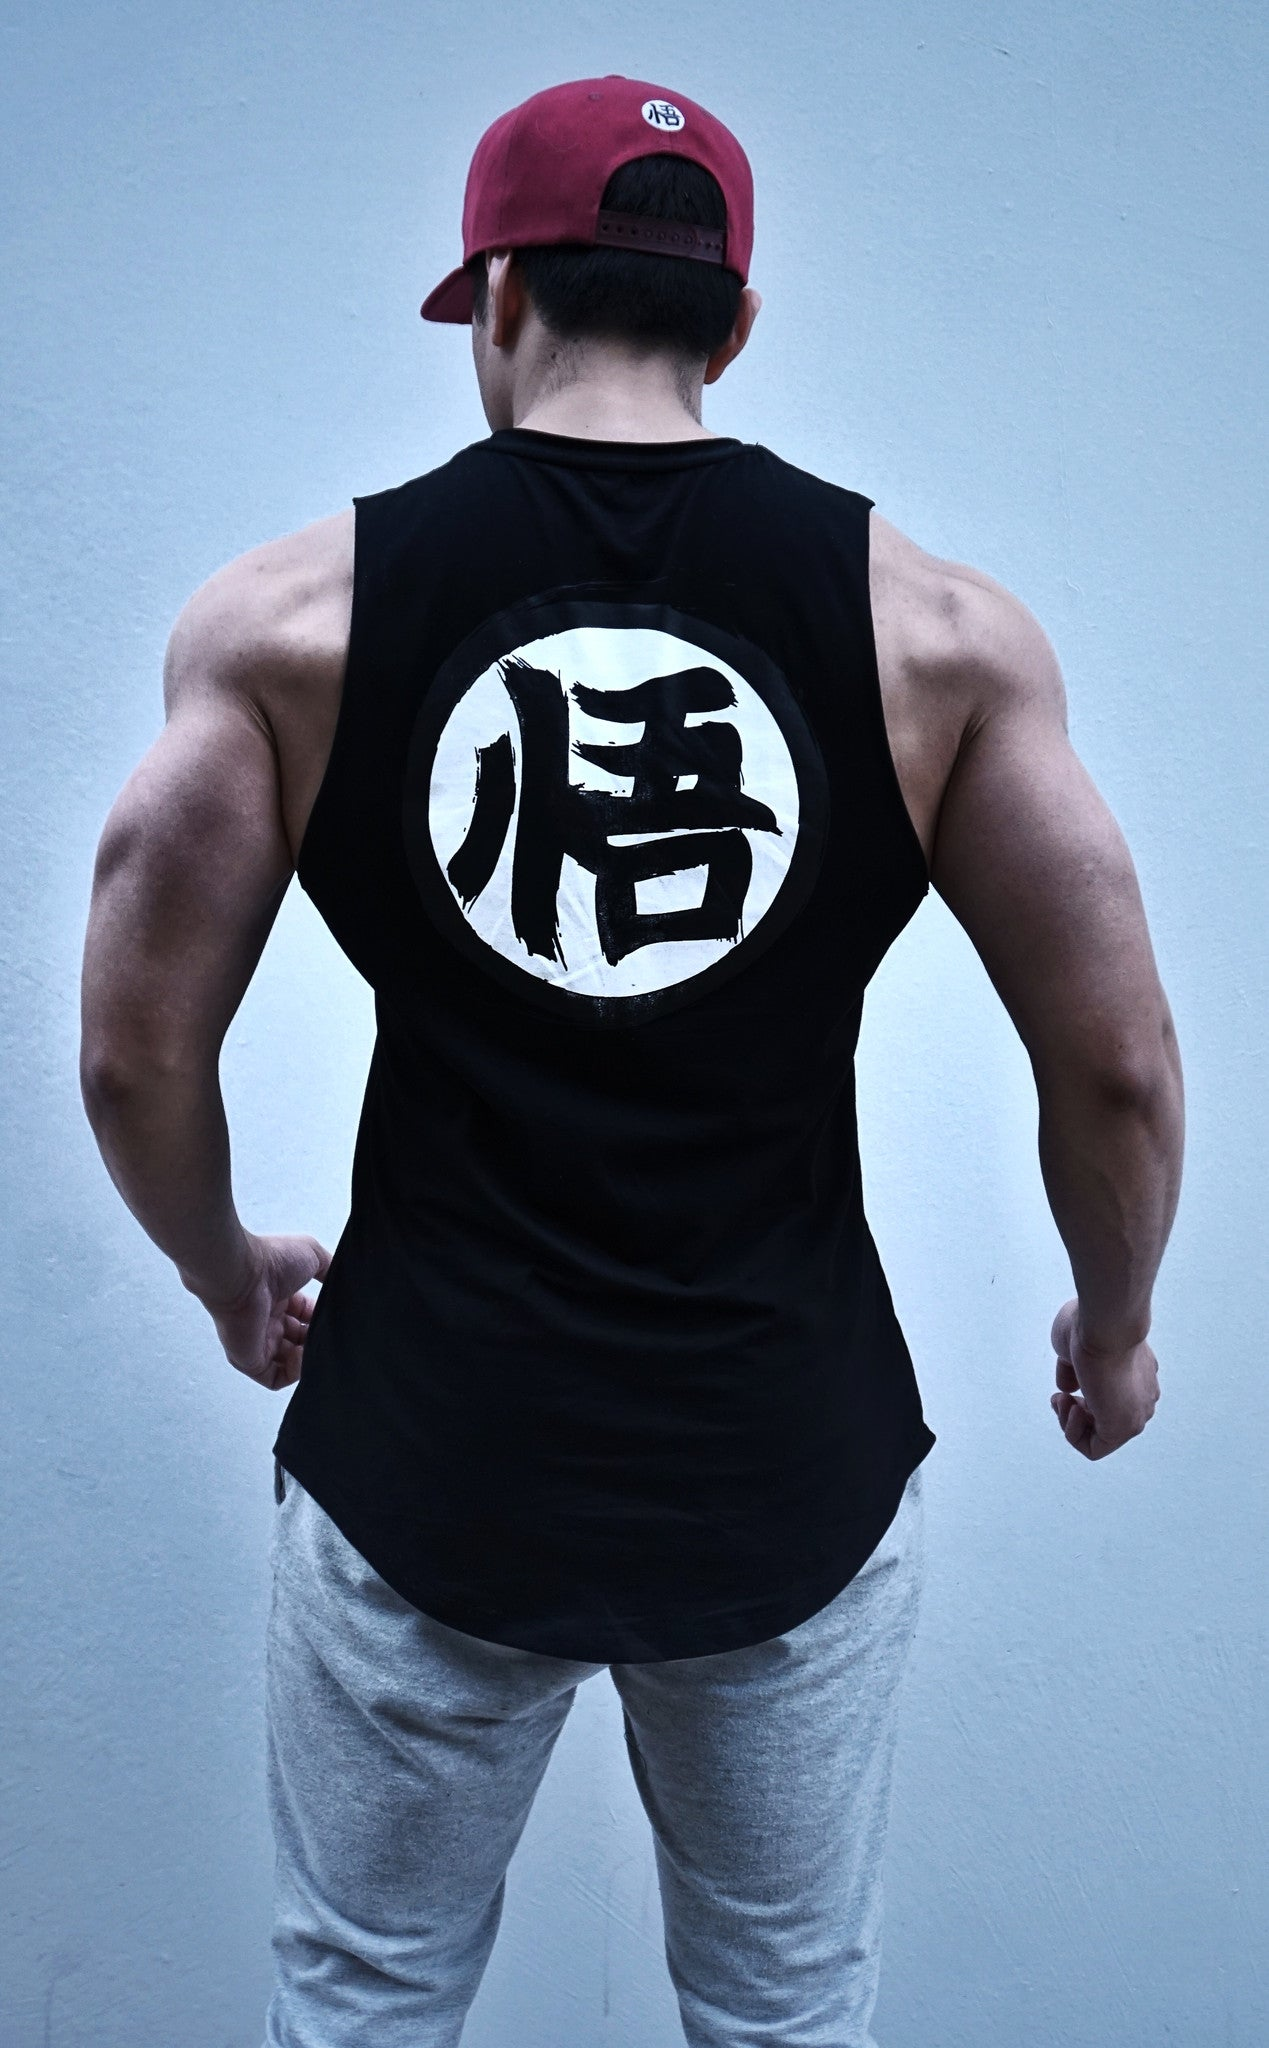 V2.0 Ascension' Muscle Shirt - Rough Cut - Elite Black - Saiyan Evolution Online Shop Worldwide Shipping - 2